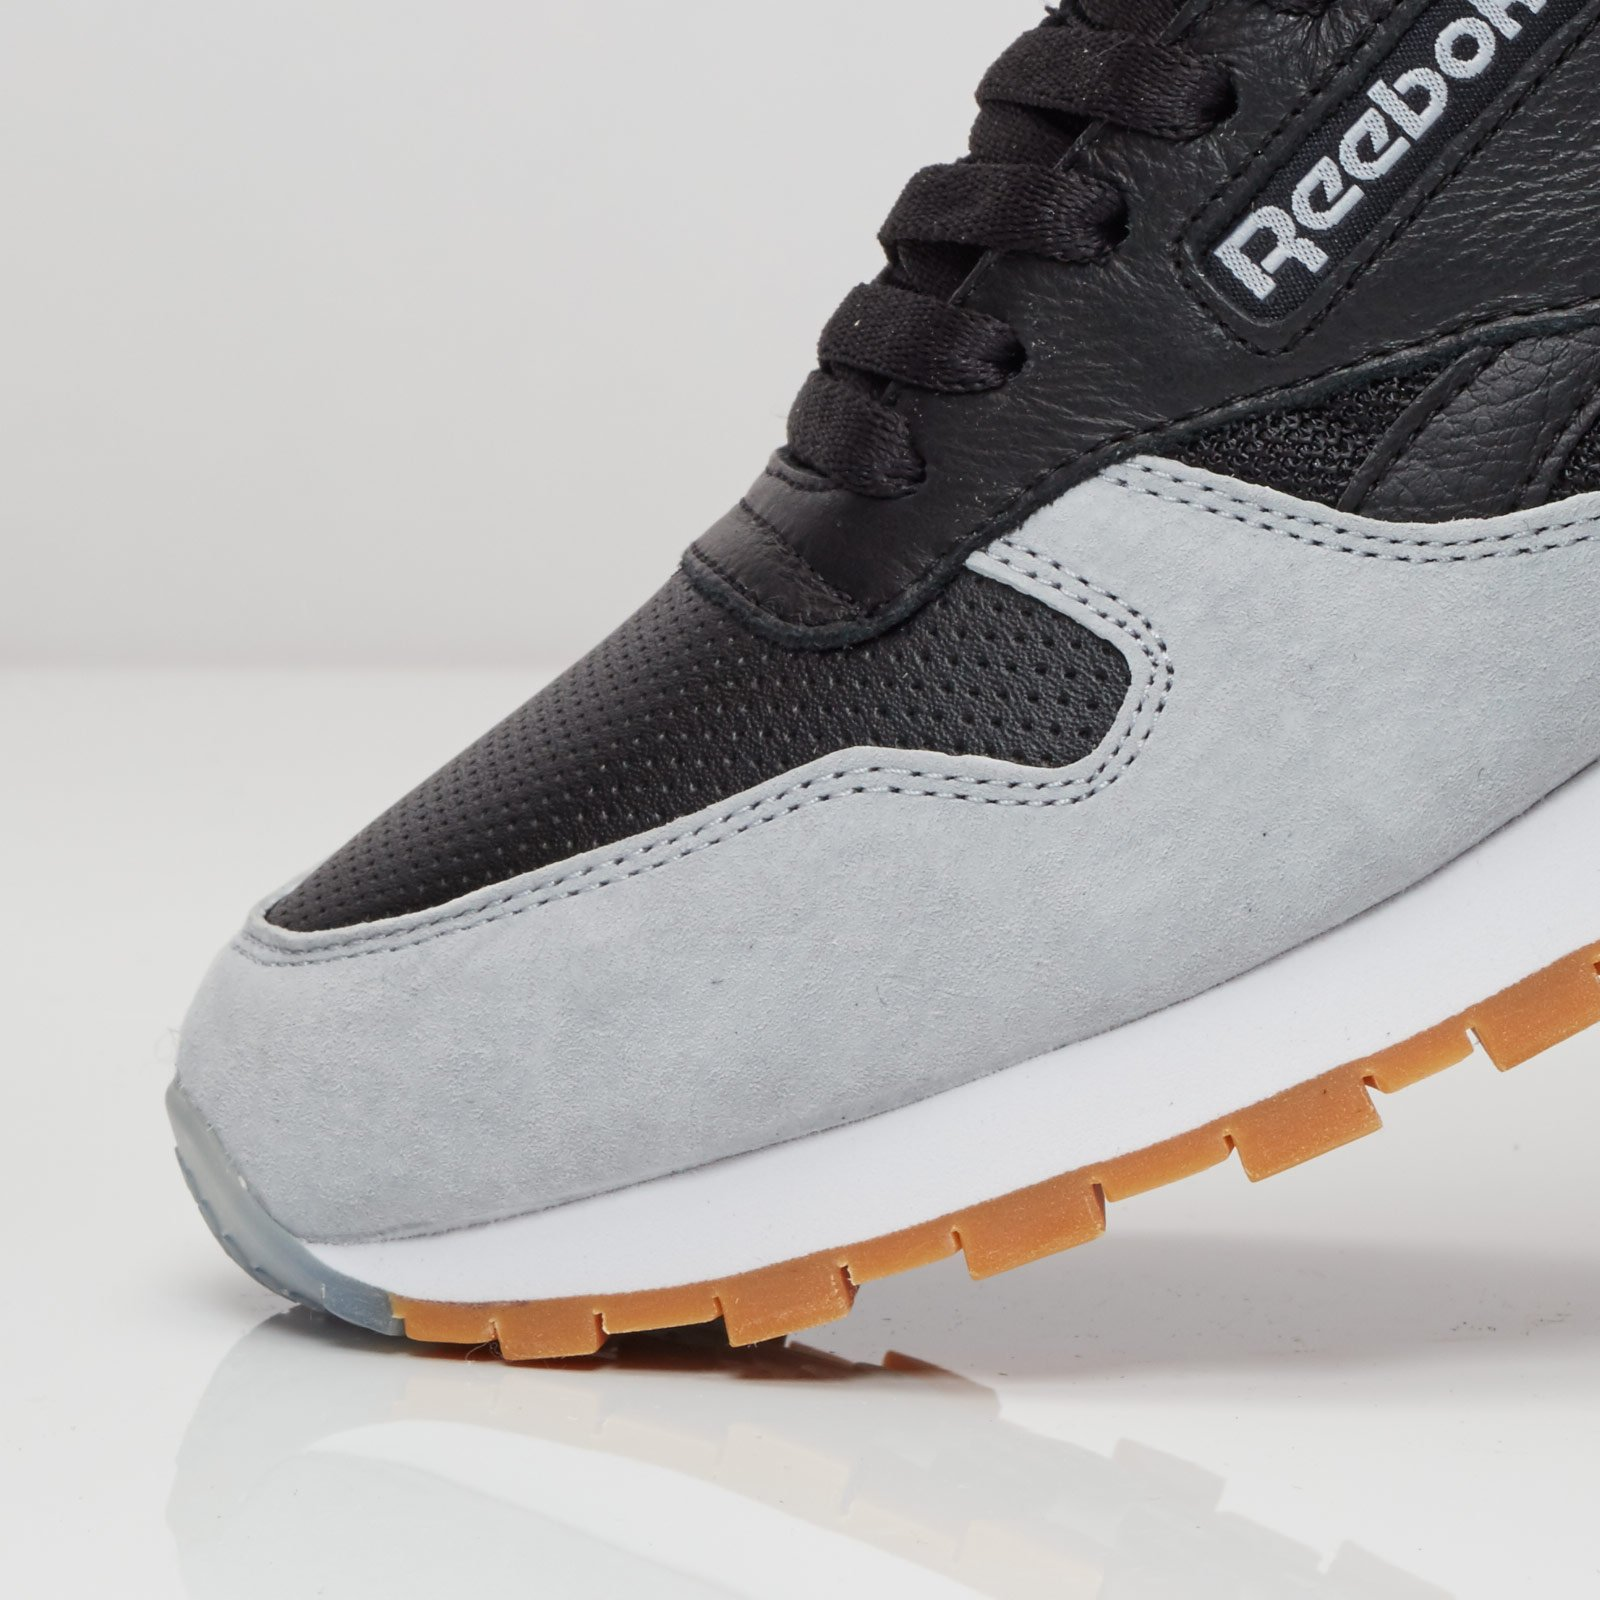 feded2bd0dbef Reebok Classic Leather SPP - Ar1895 - Sneakersnstuff